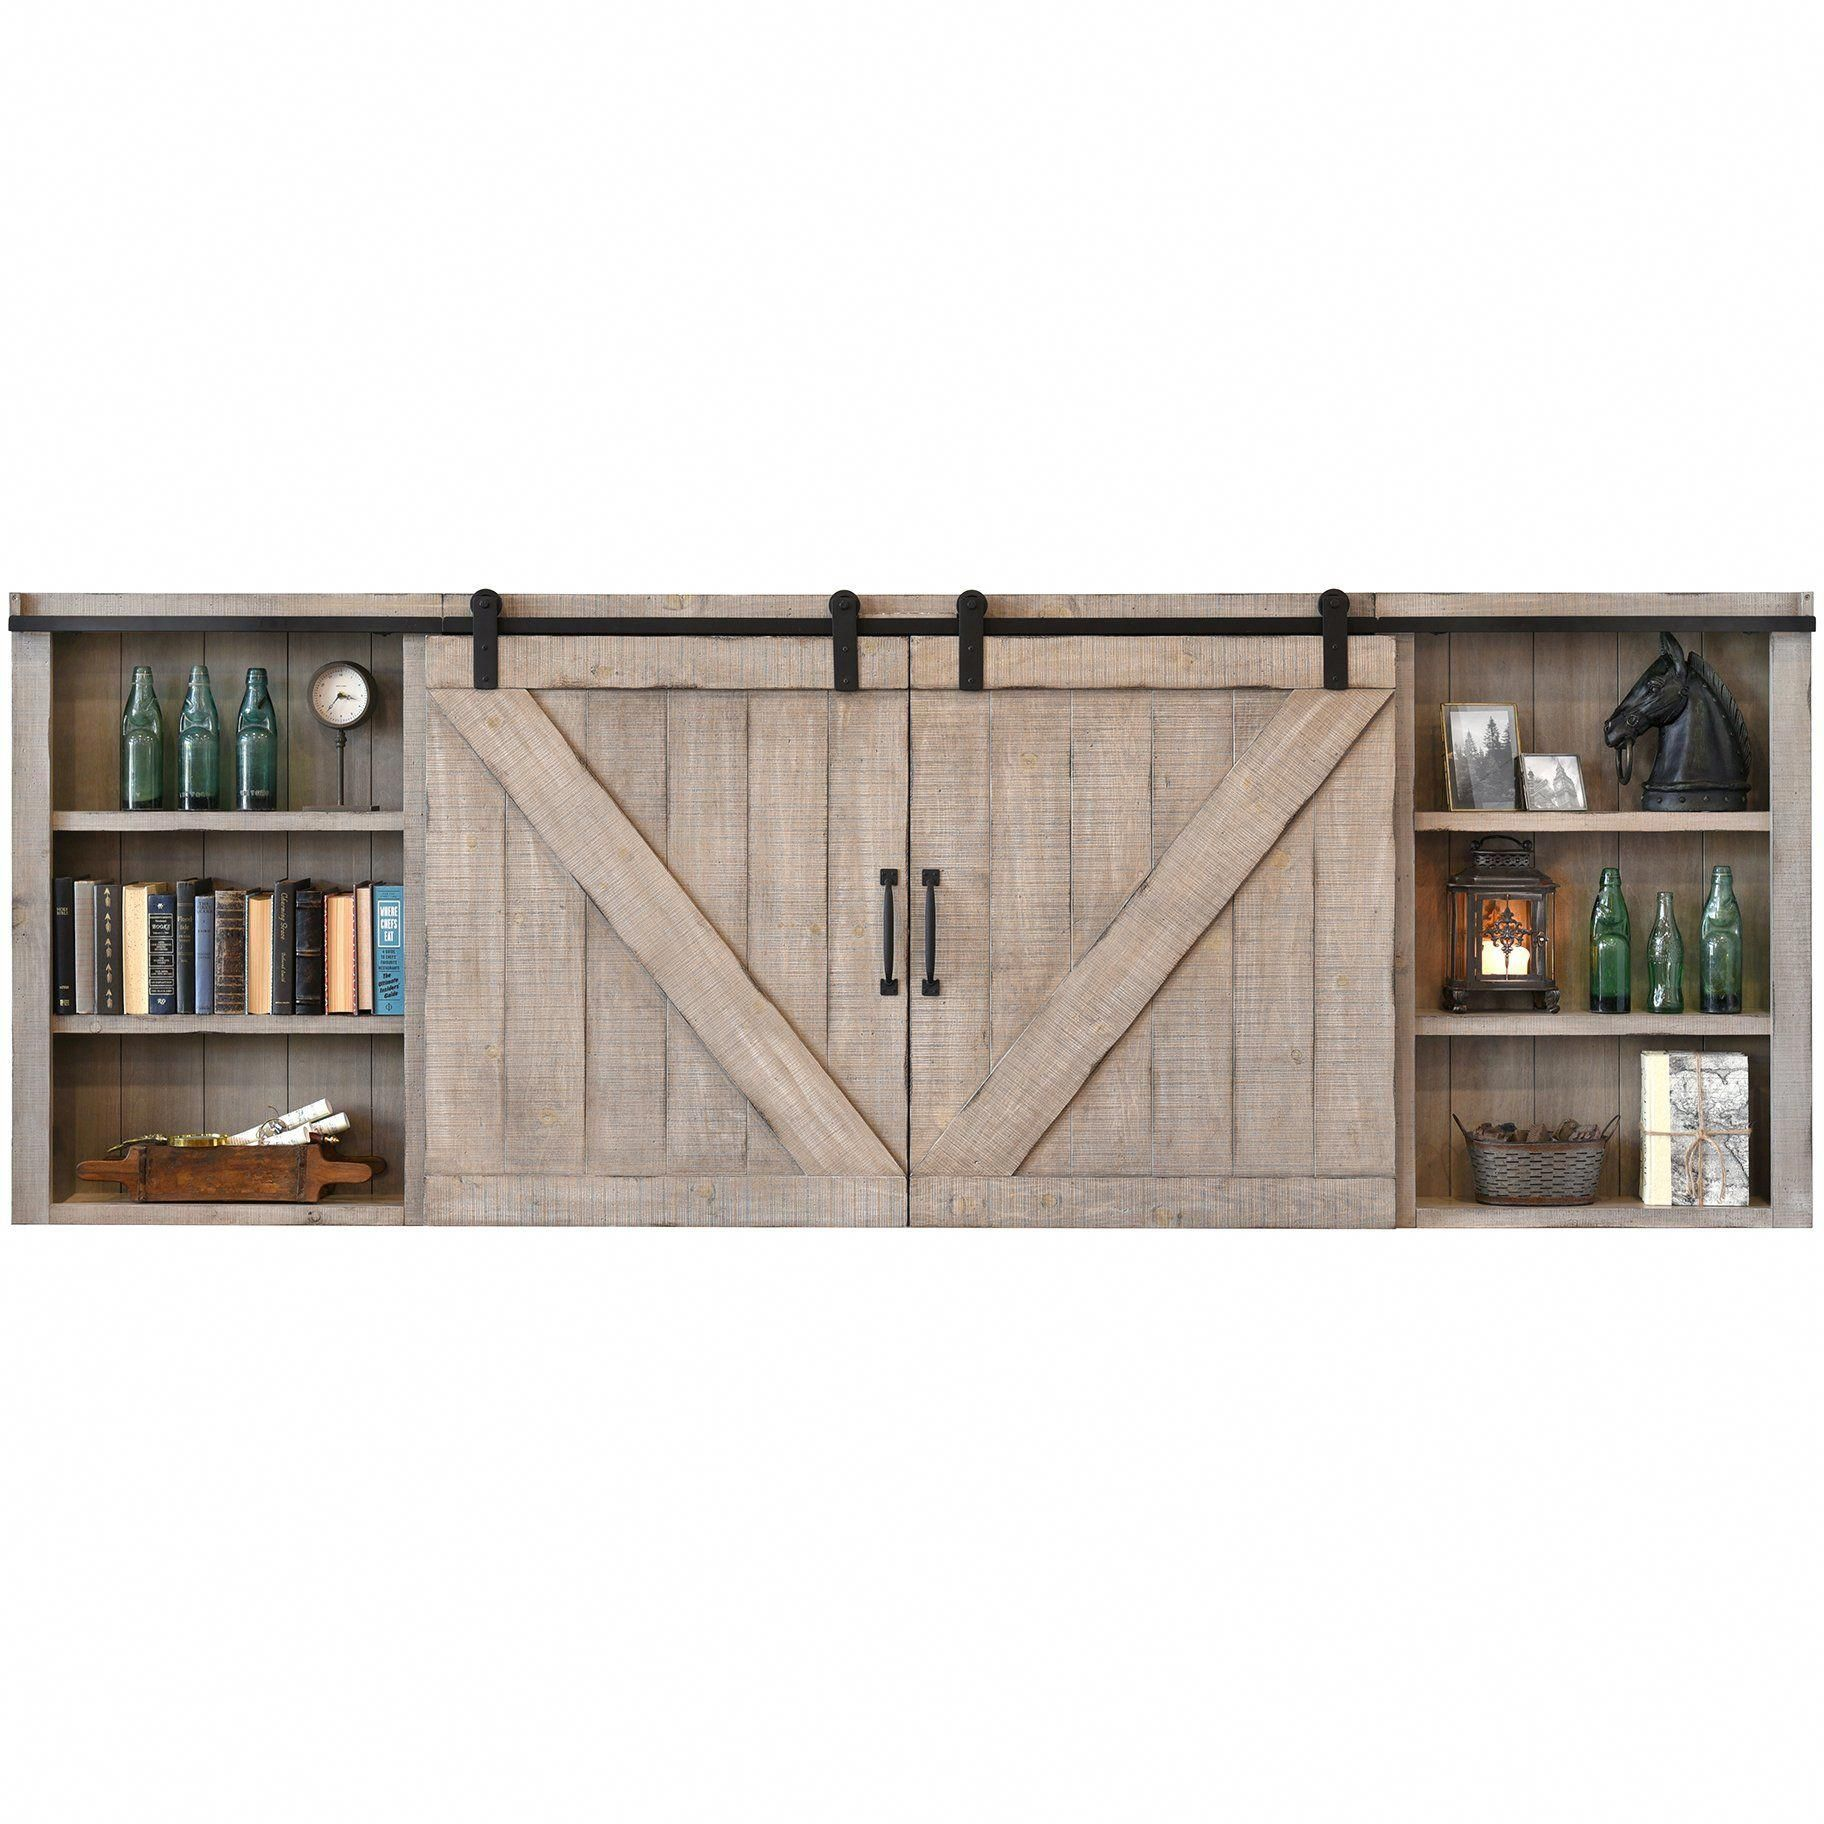 Gray Wall Mount Tv Cabinet Cover Barn Door Save With This Bundle This Stunning 6 Piece Wall Wall Mounted Tv Cabinet Wall Mounted Tv Tv Wall Mount Bedroom